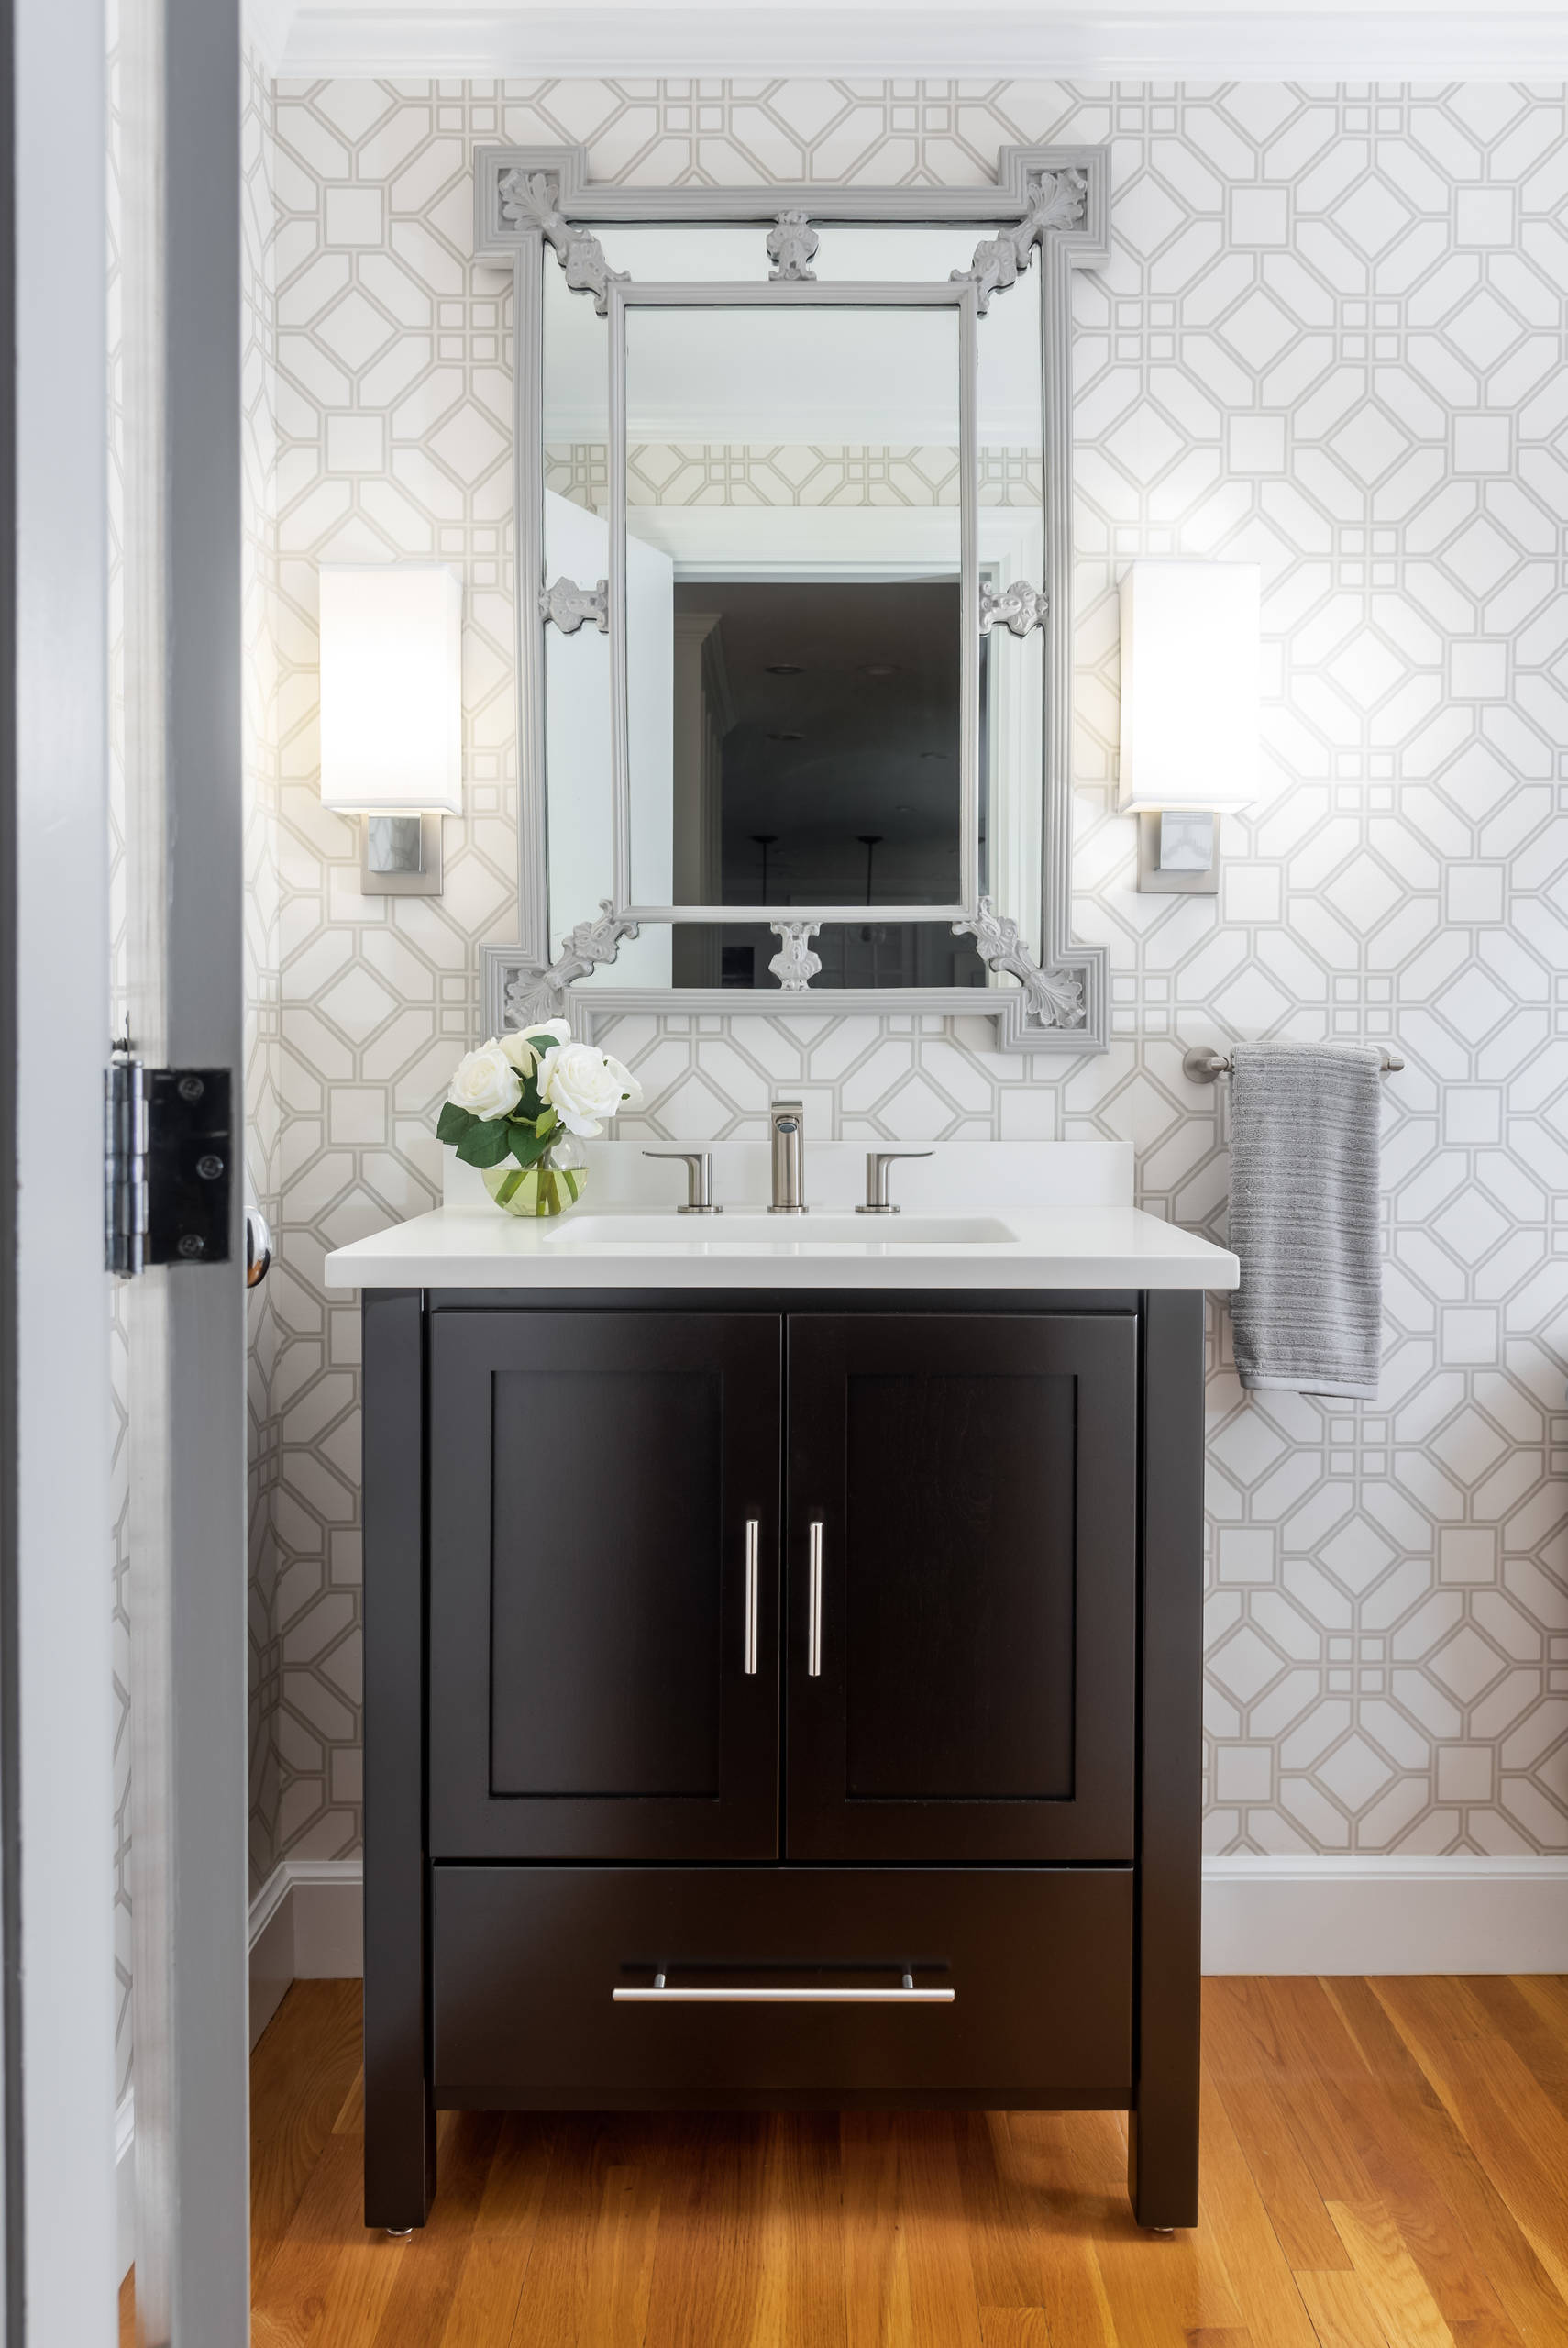 75 Beautiful Powder Room With Black Cabinets Pictures Ideas February 2021 Houzz